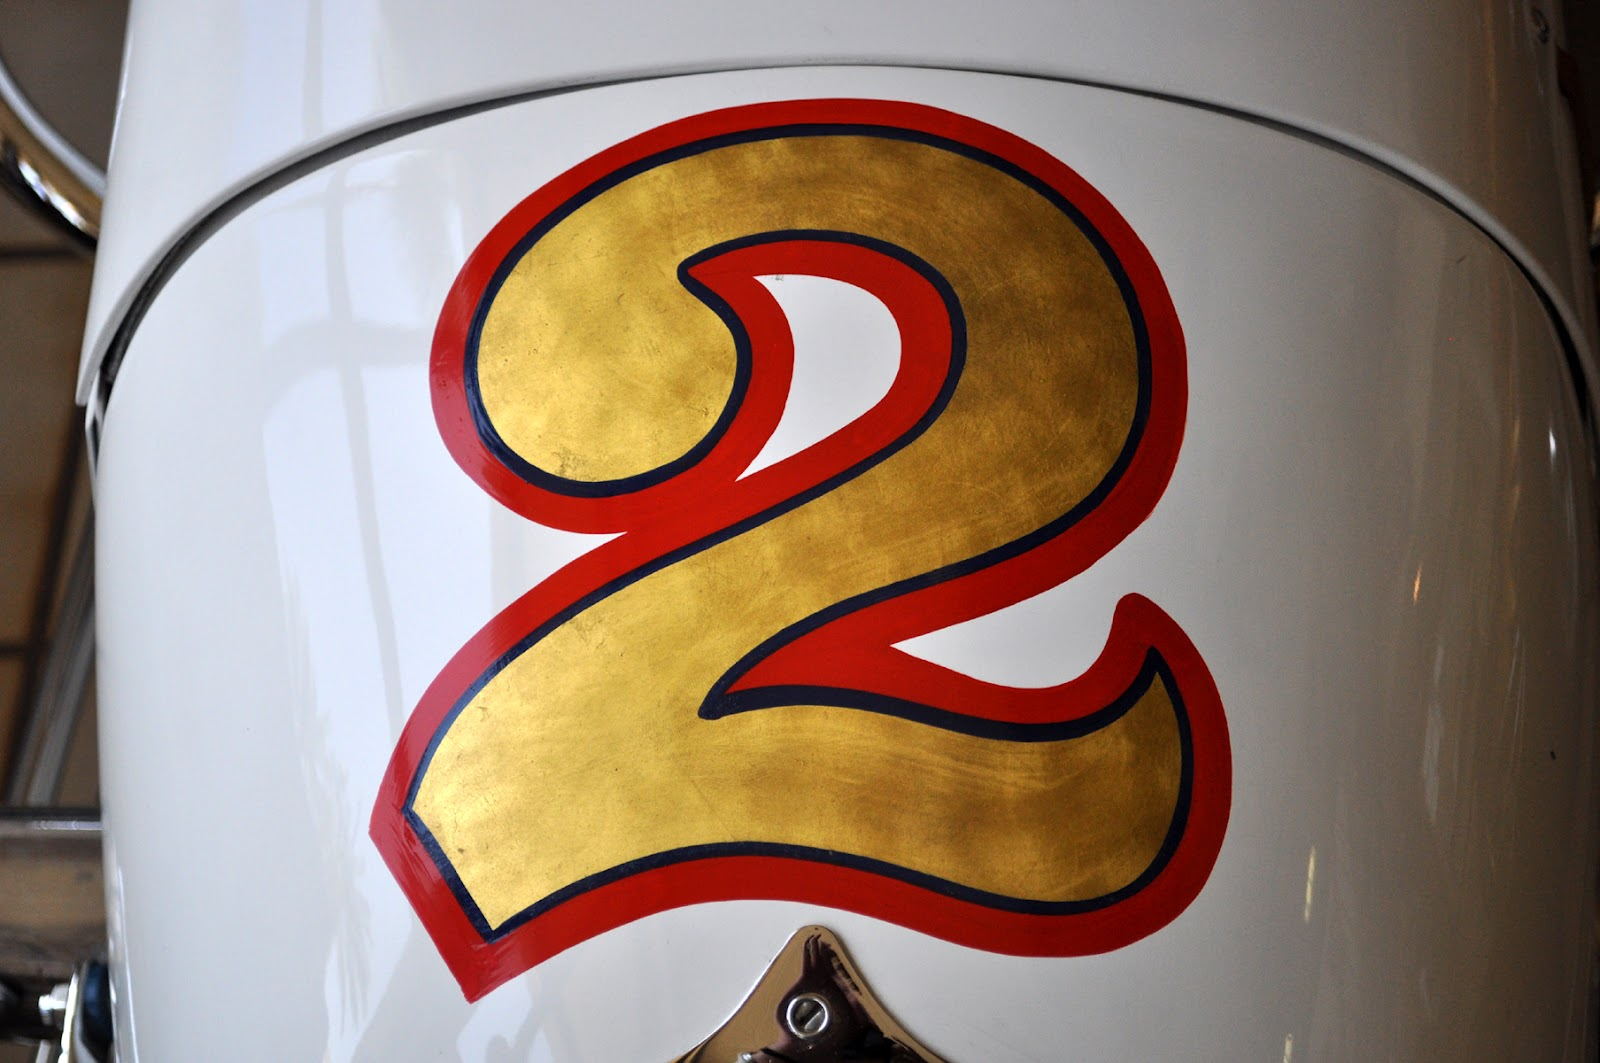 Font Number Race >> Just A Car Guy: Midget and sprint car number variety, before computers printed out fonts, on ...